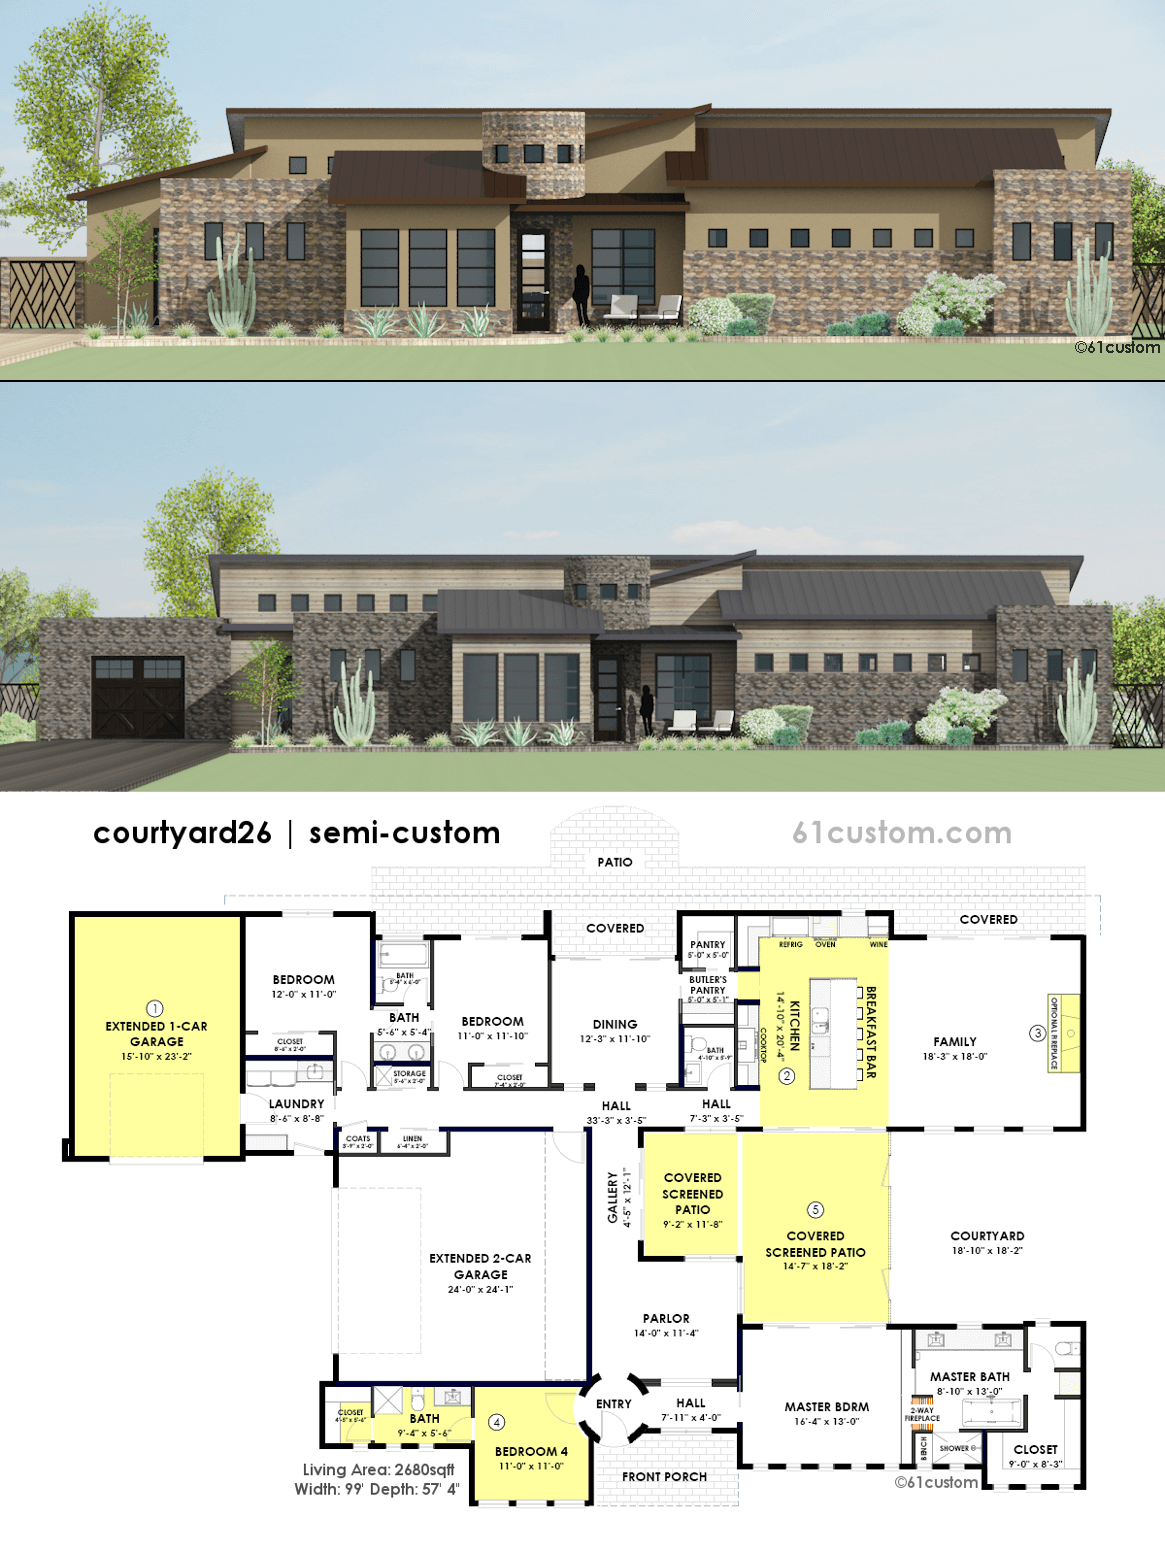 Contemporary side courtyard house plan 61custom for Contemporary house floor plans